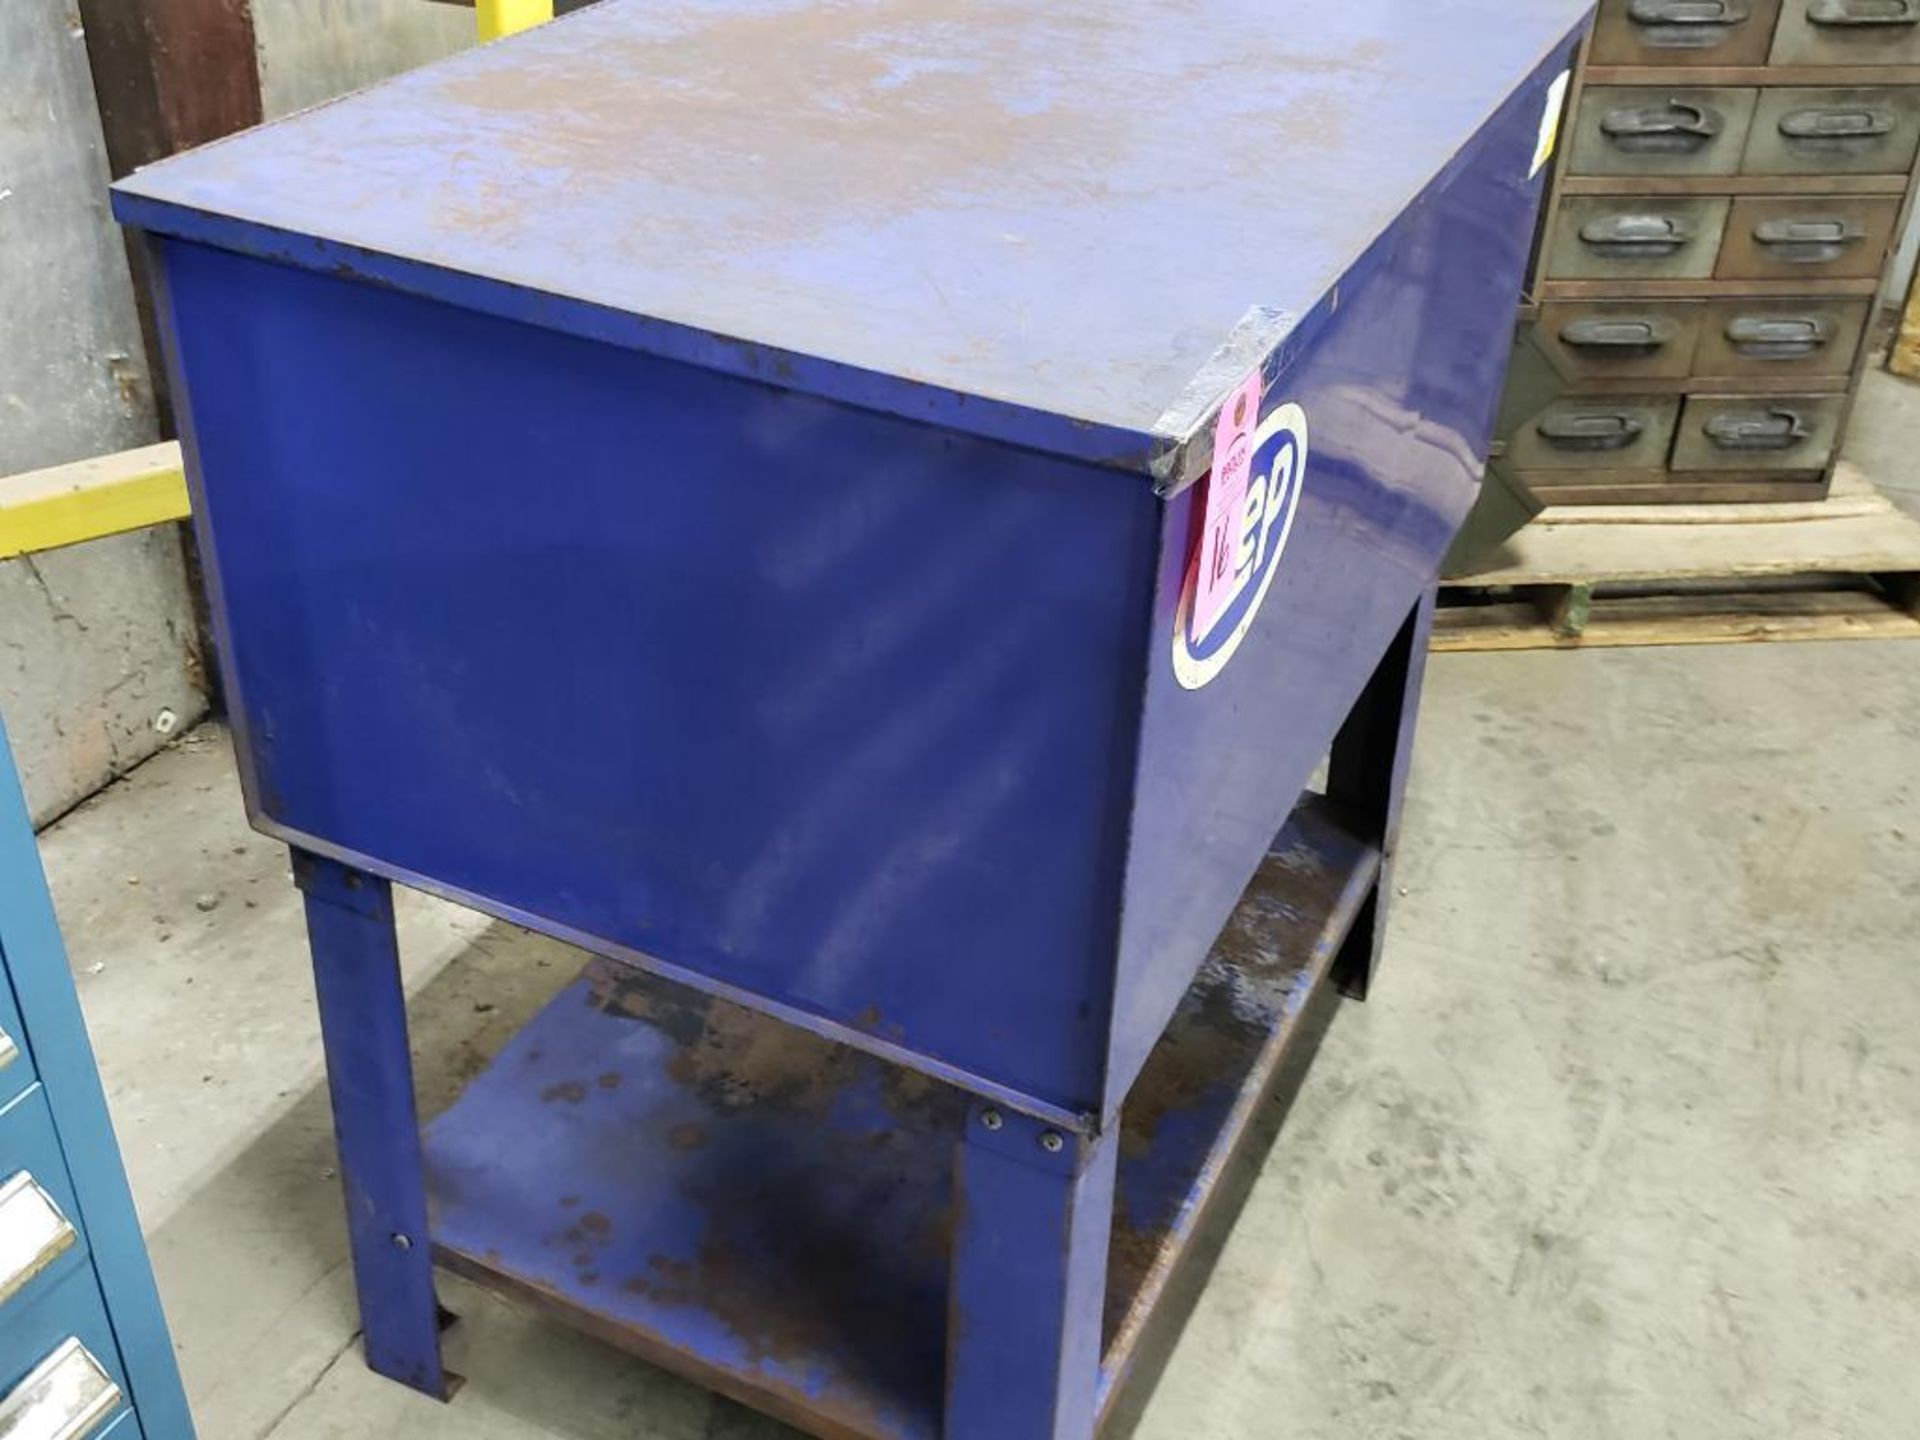 Lot 16 - Zep parts washer.